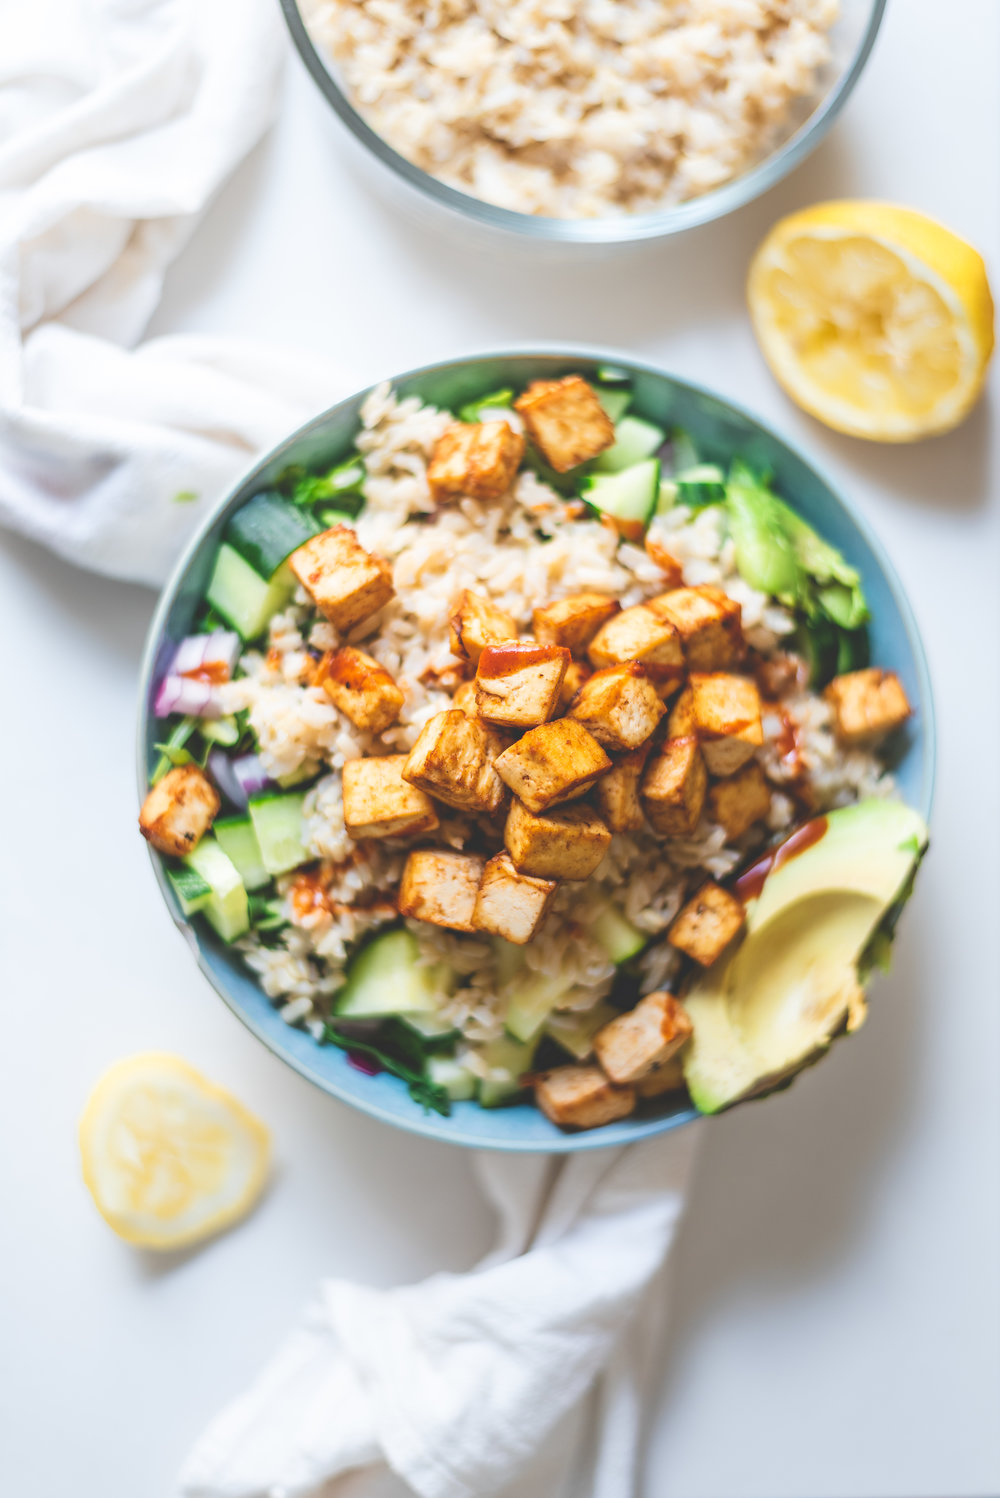 CRISPY HEALTHY TOFU SALAD